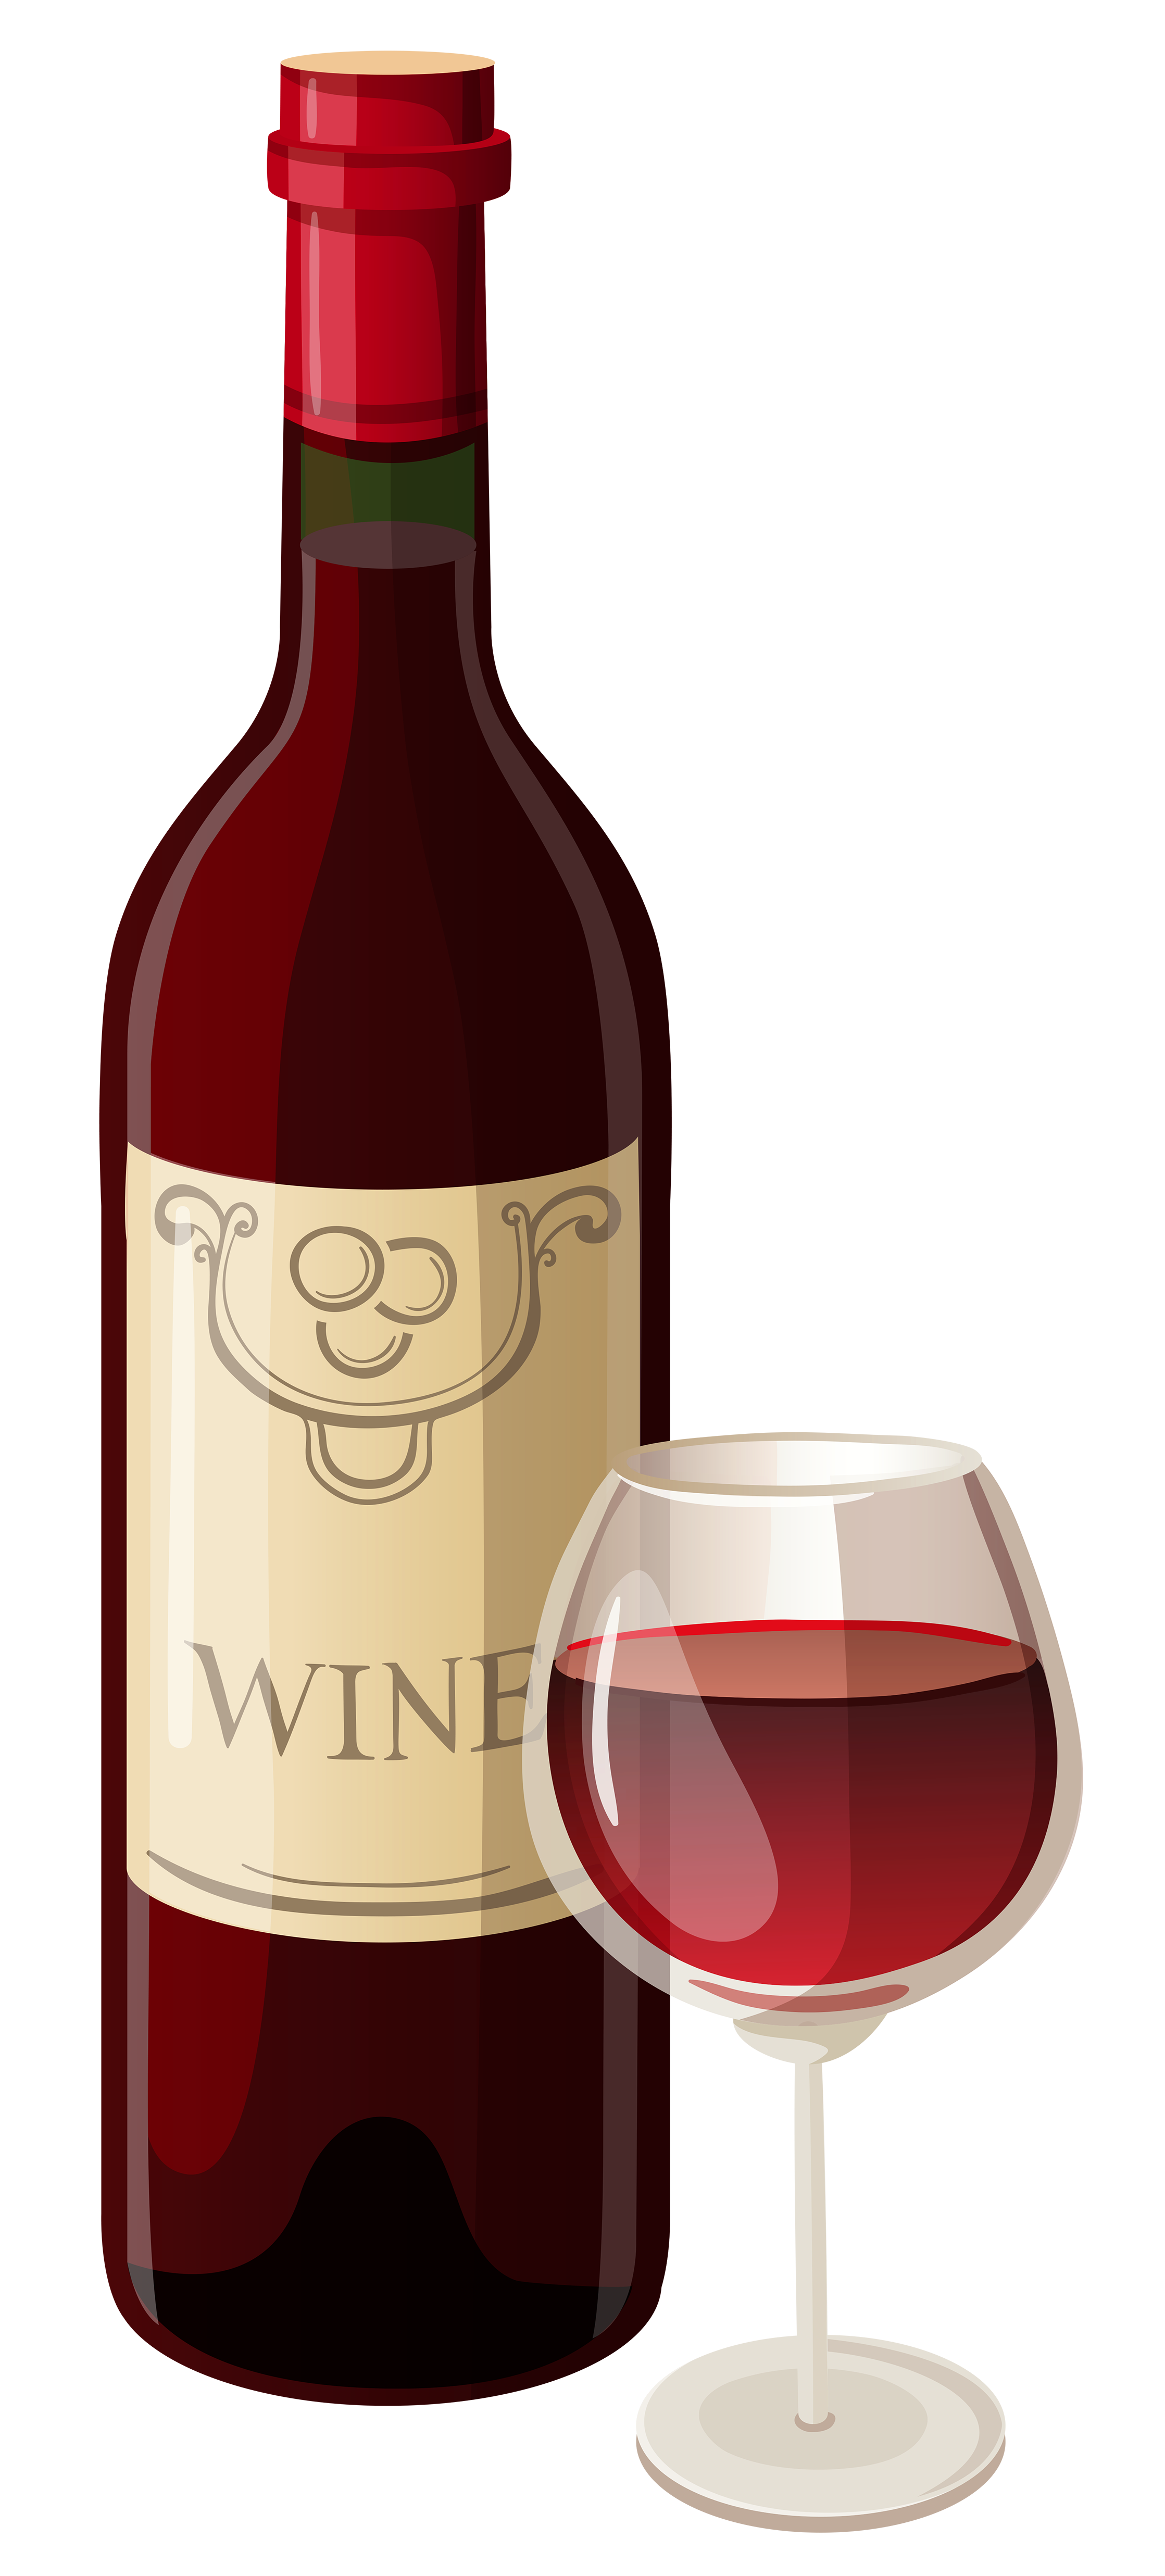 Grapes clipart wine glass.  collection of free